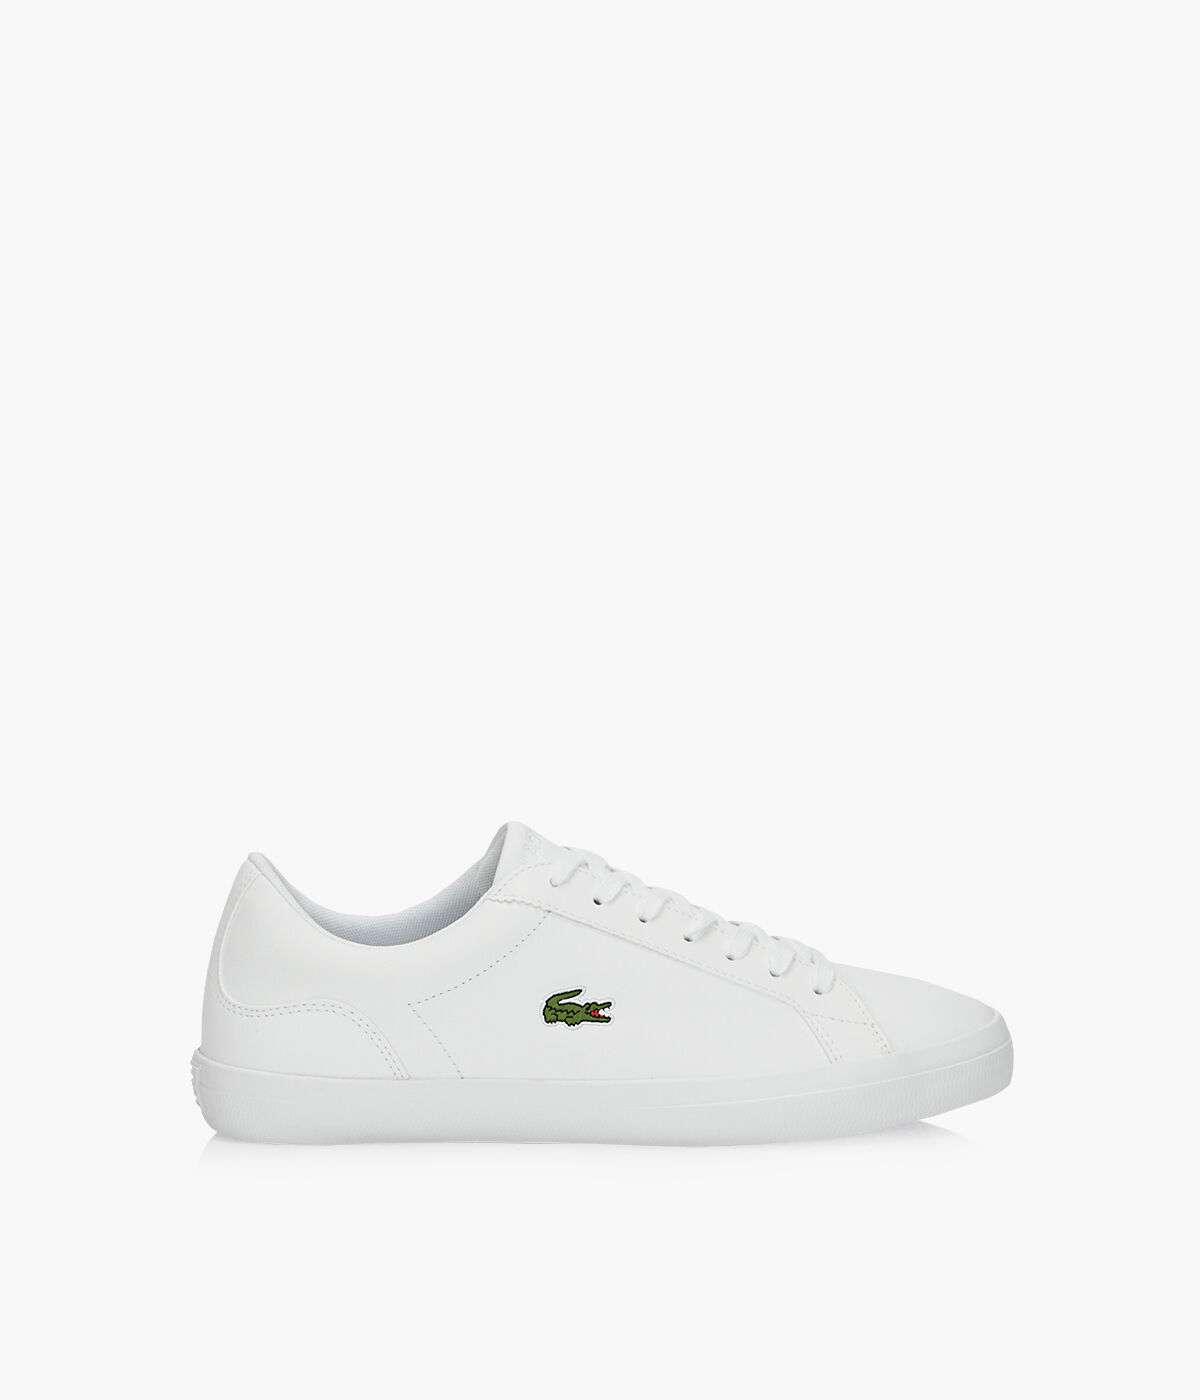 LACOSTE LEROND BL1 - Leather | Browns Shoes